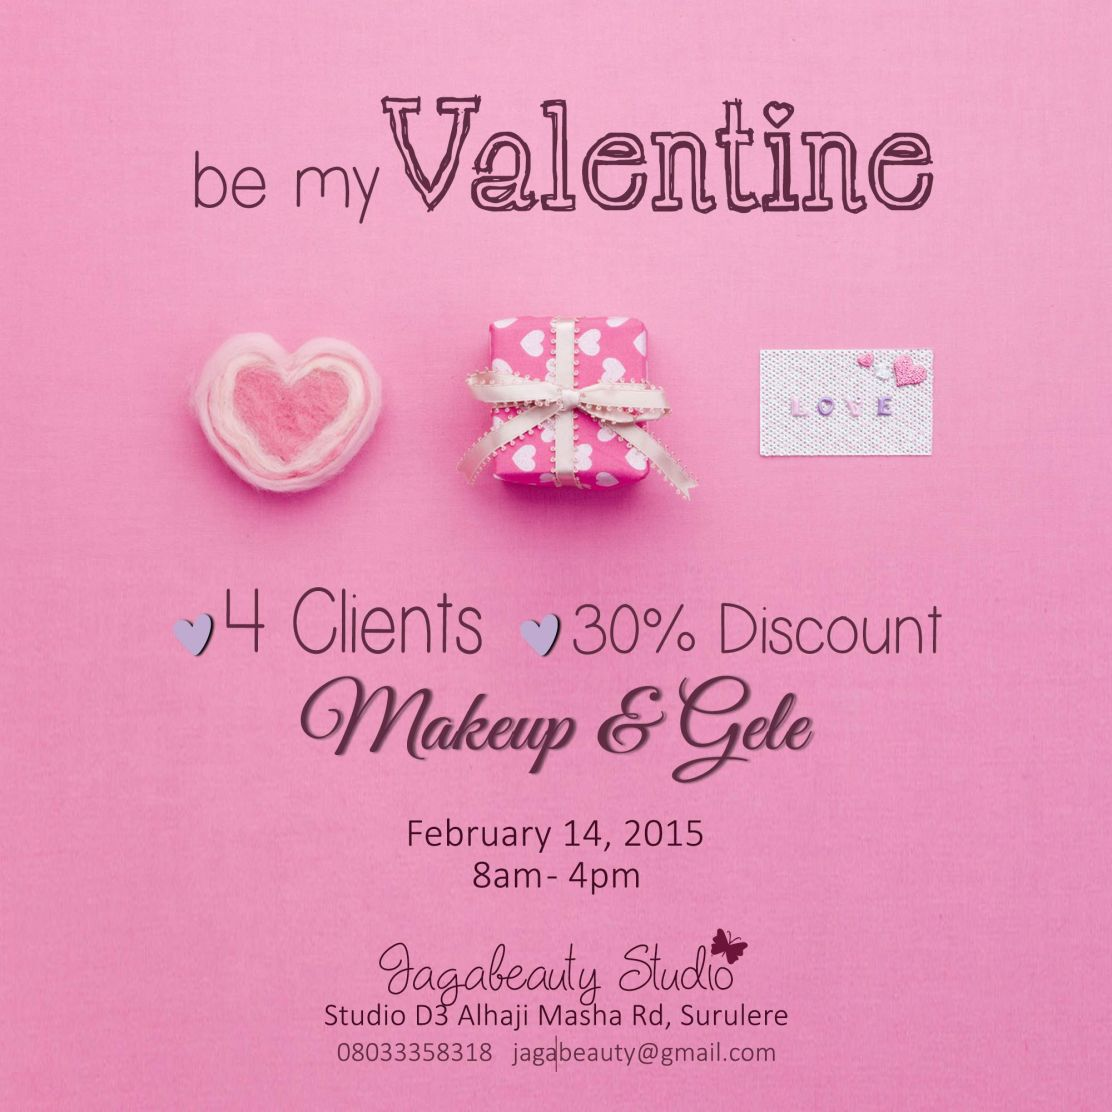 Jagabeauty-Be-My-Valentine